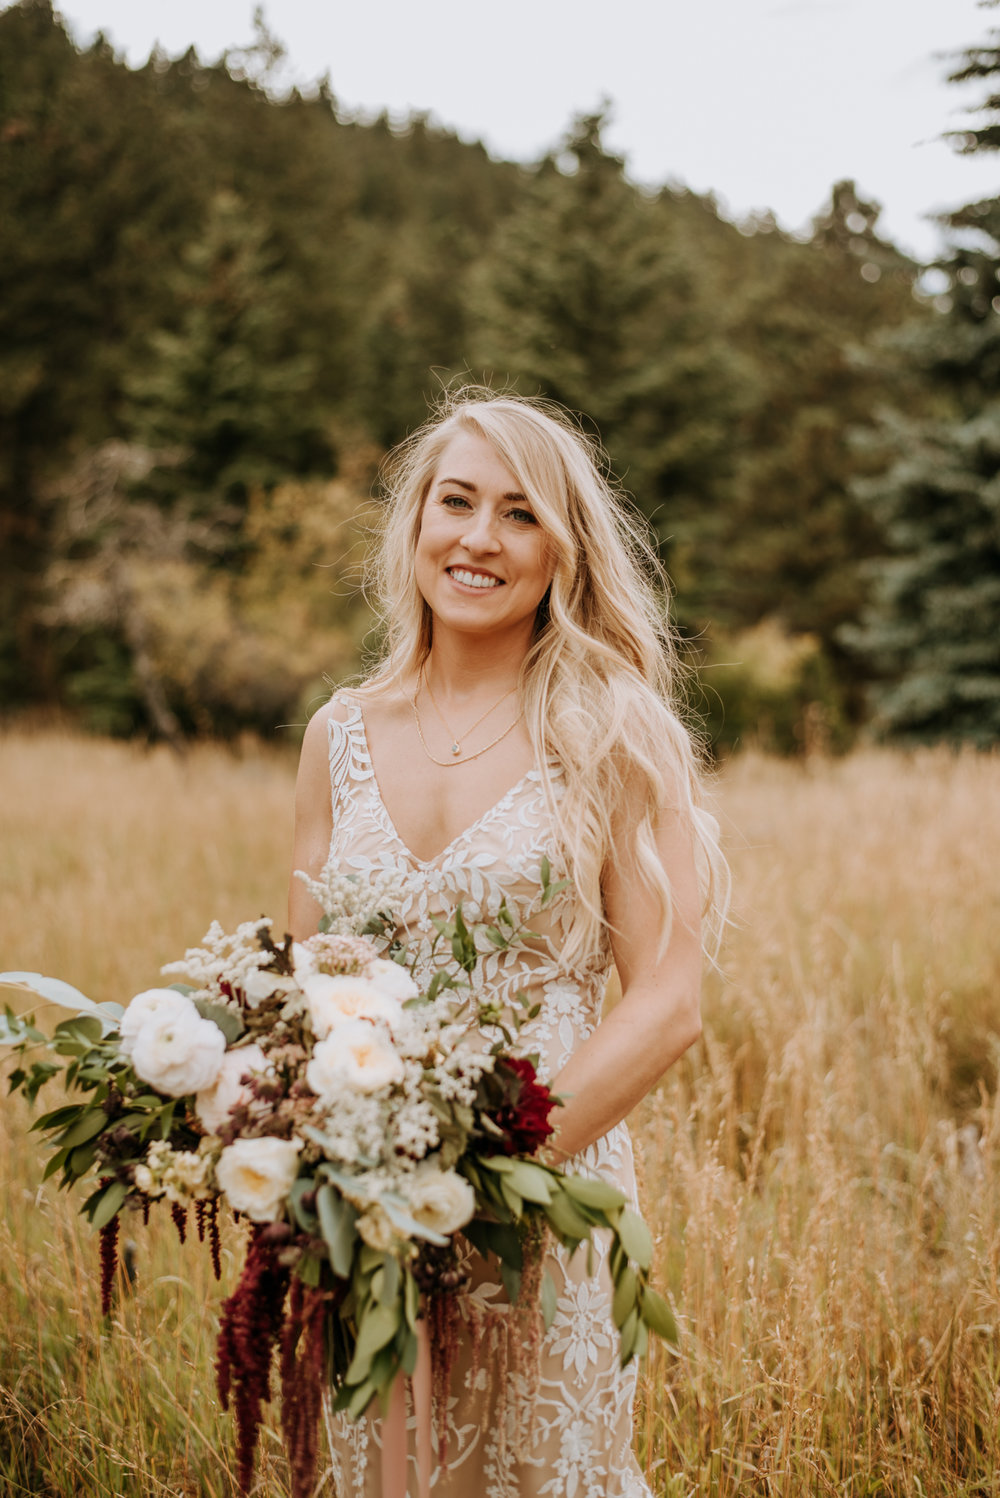 Stephanie made a gorgeous bride on her wedding day! Love this RMNP wedding.